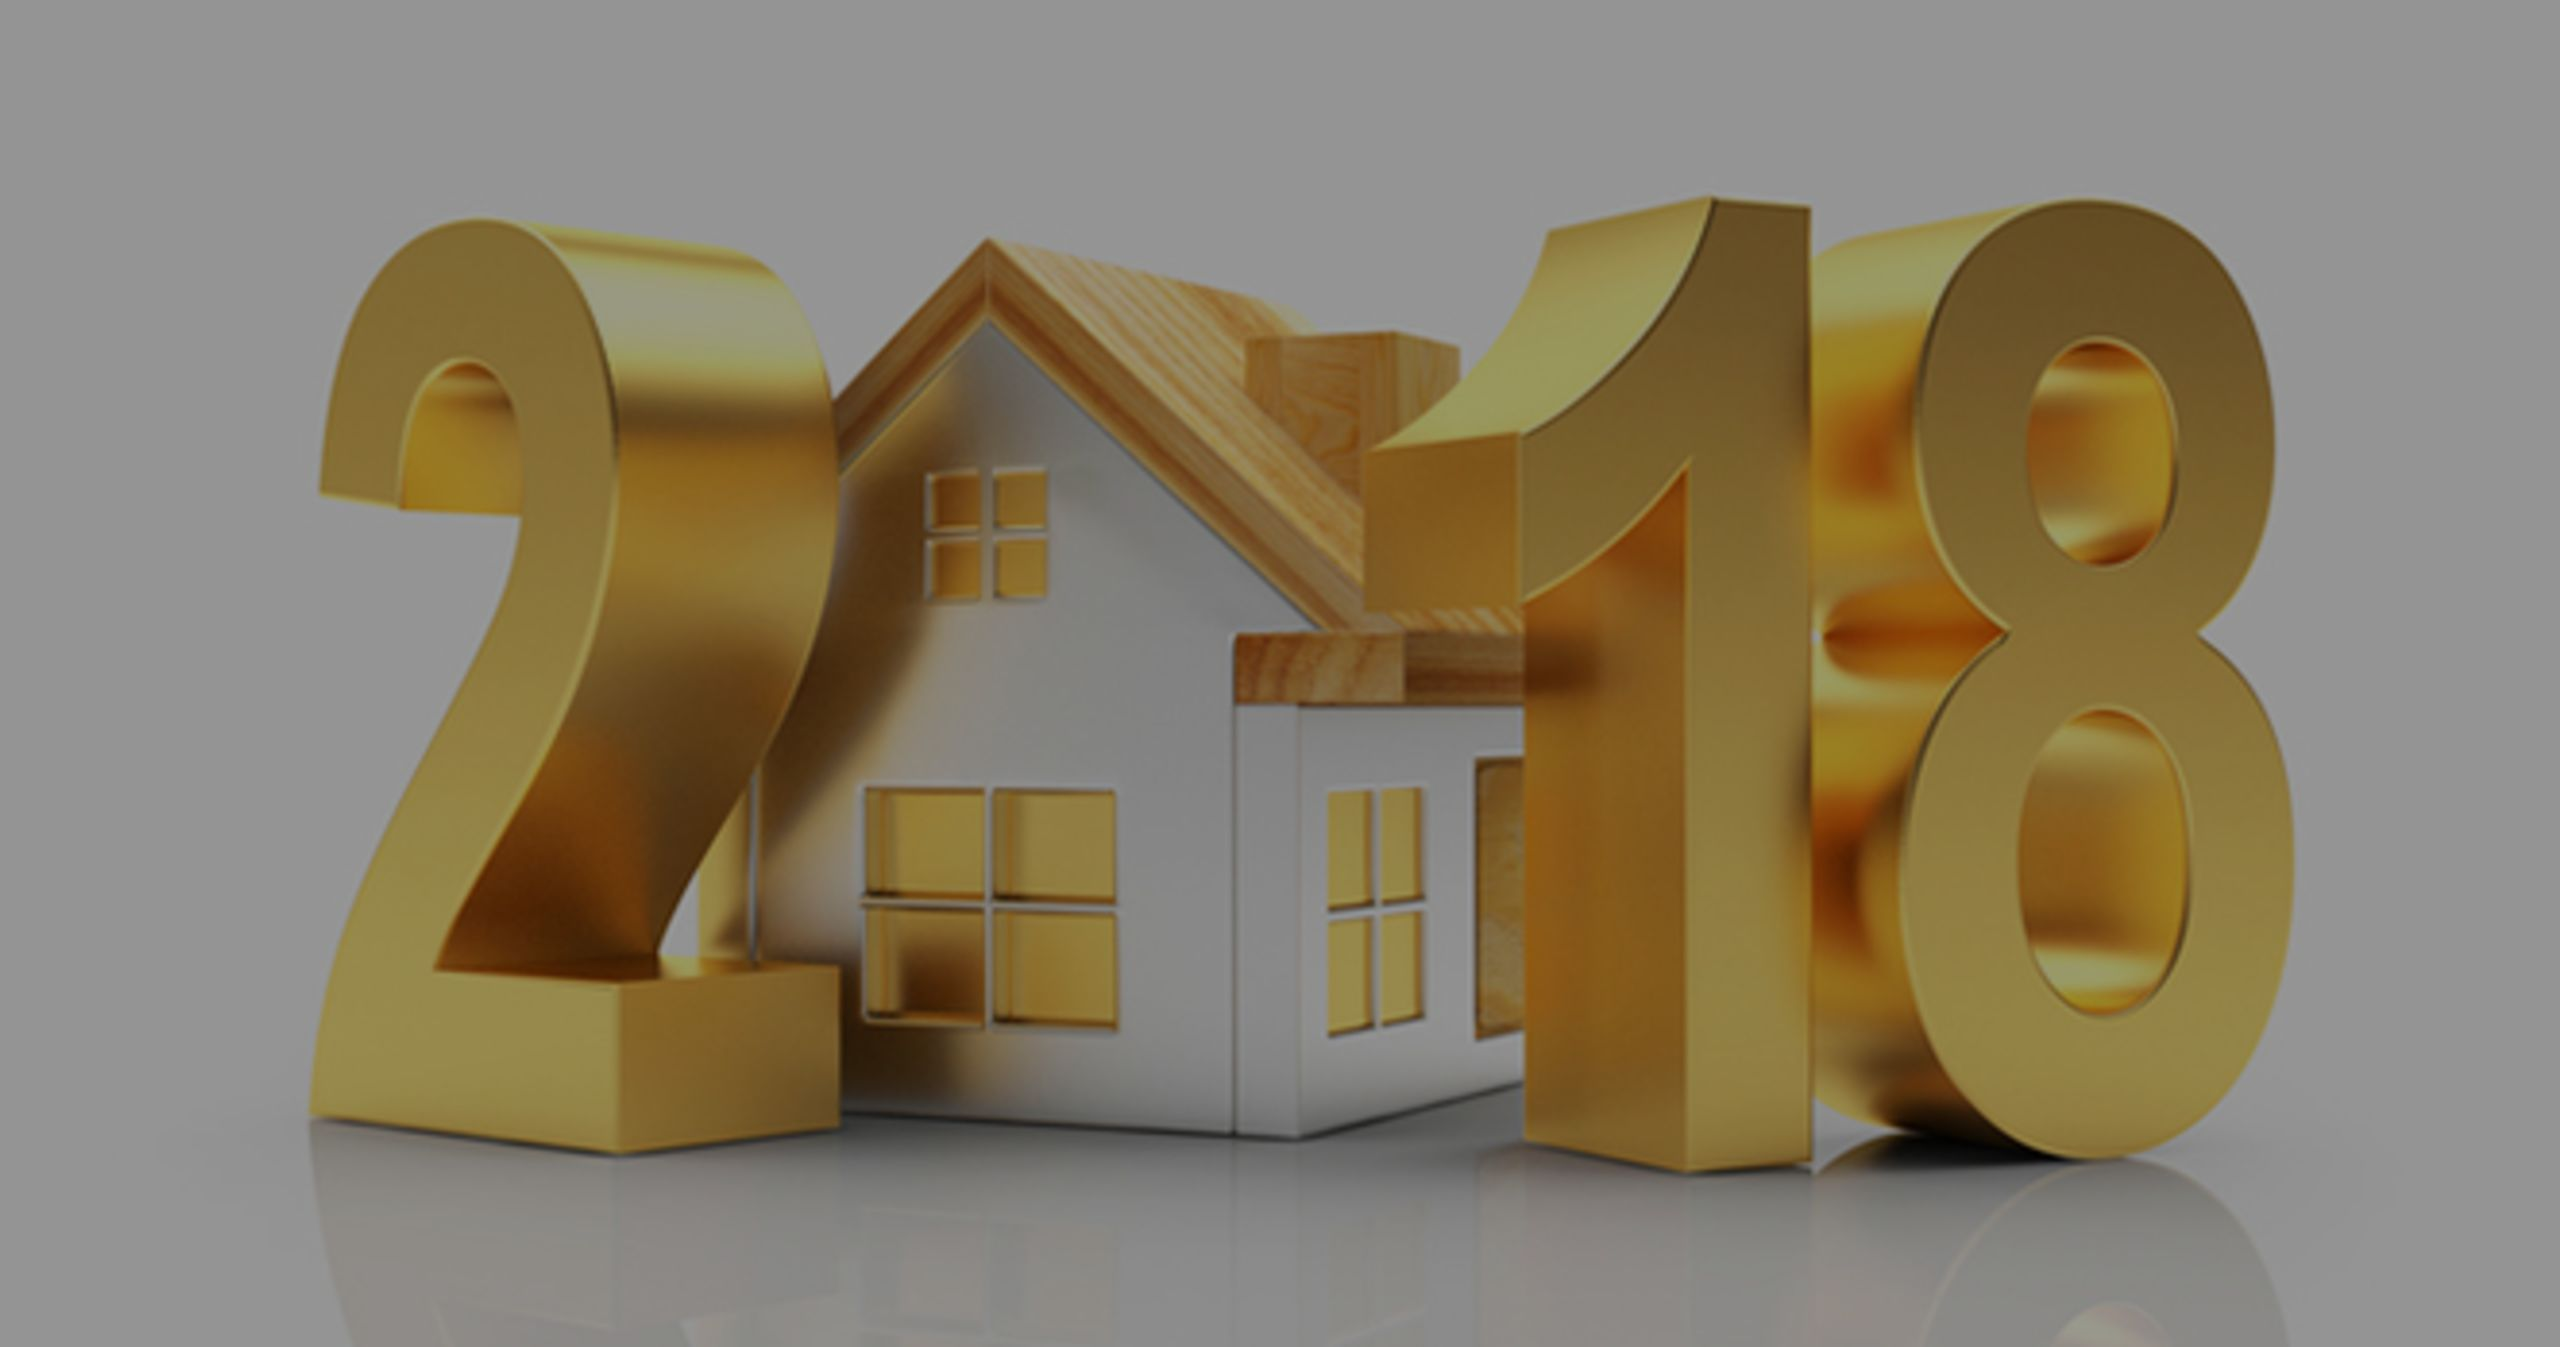 Housing in 2018: Where Are Home Values Headed?